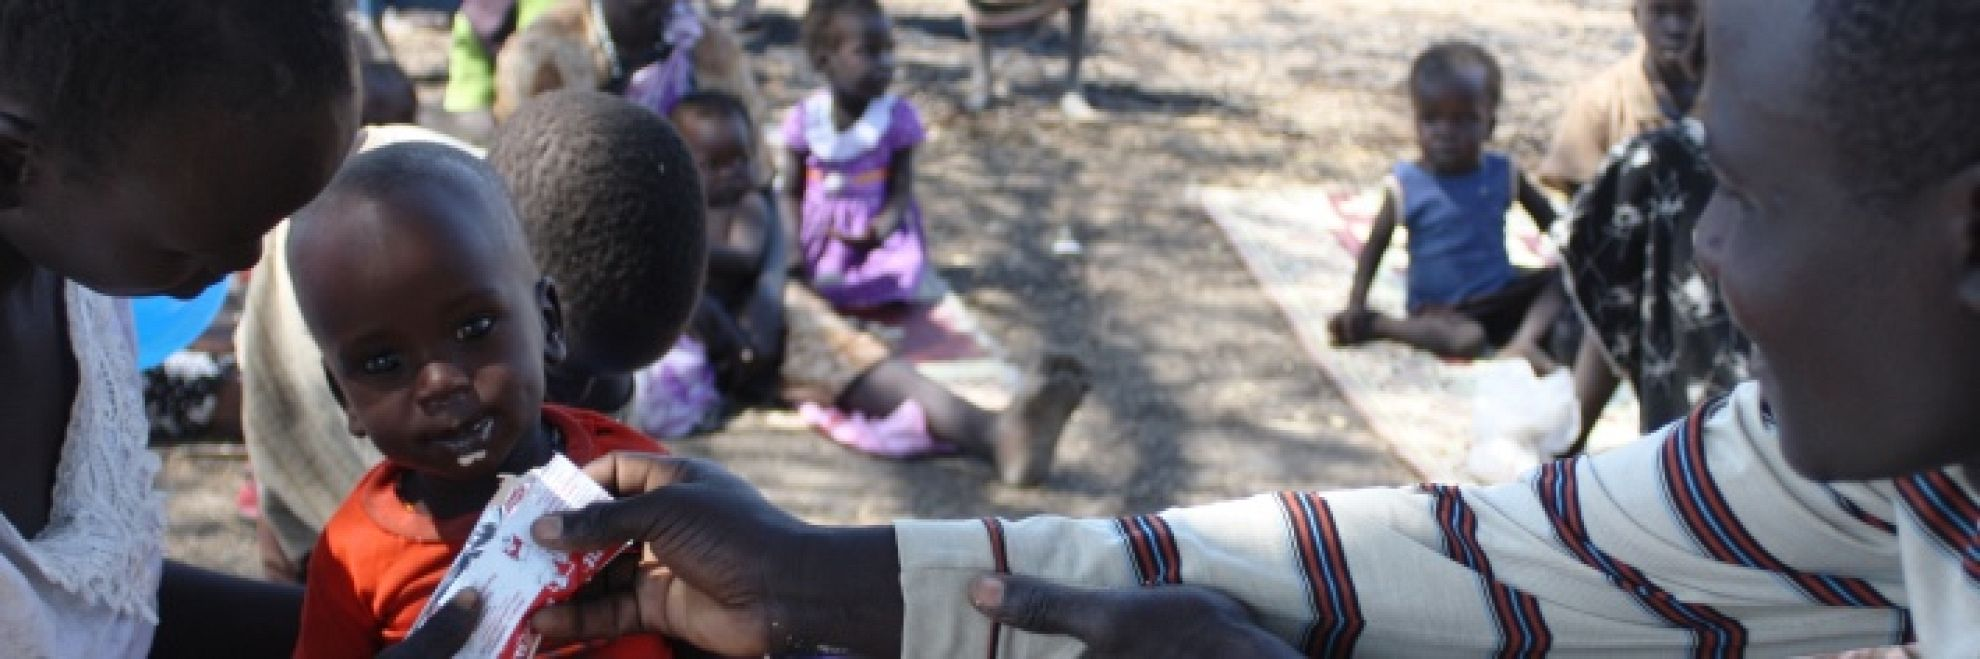 Latest News Tackling hunger in south sudan emergency nutrition workers at the frontlines